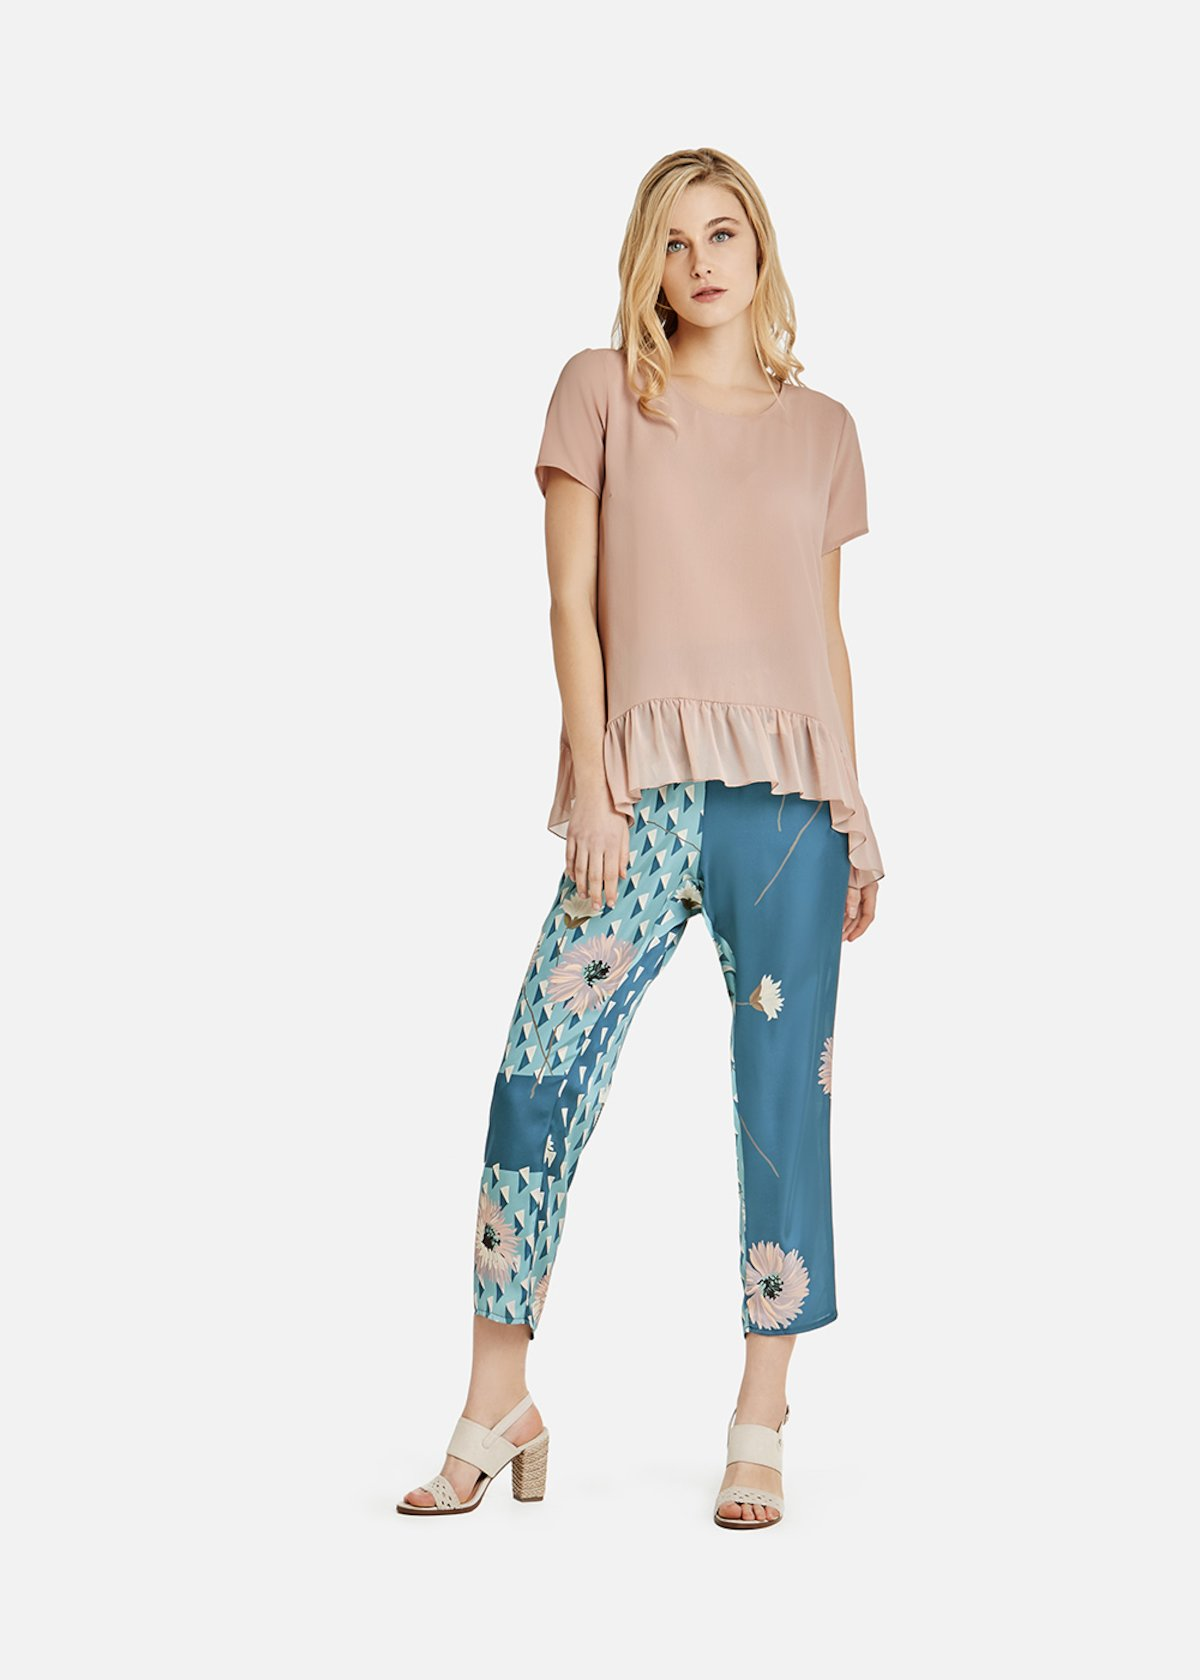 Short-sleeved blouse with georgette flounce at the bottom